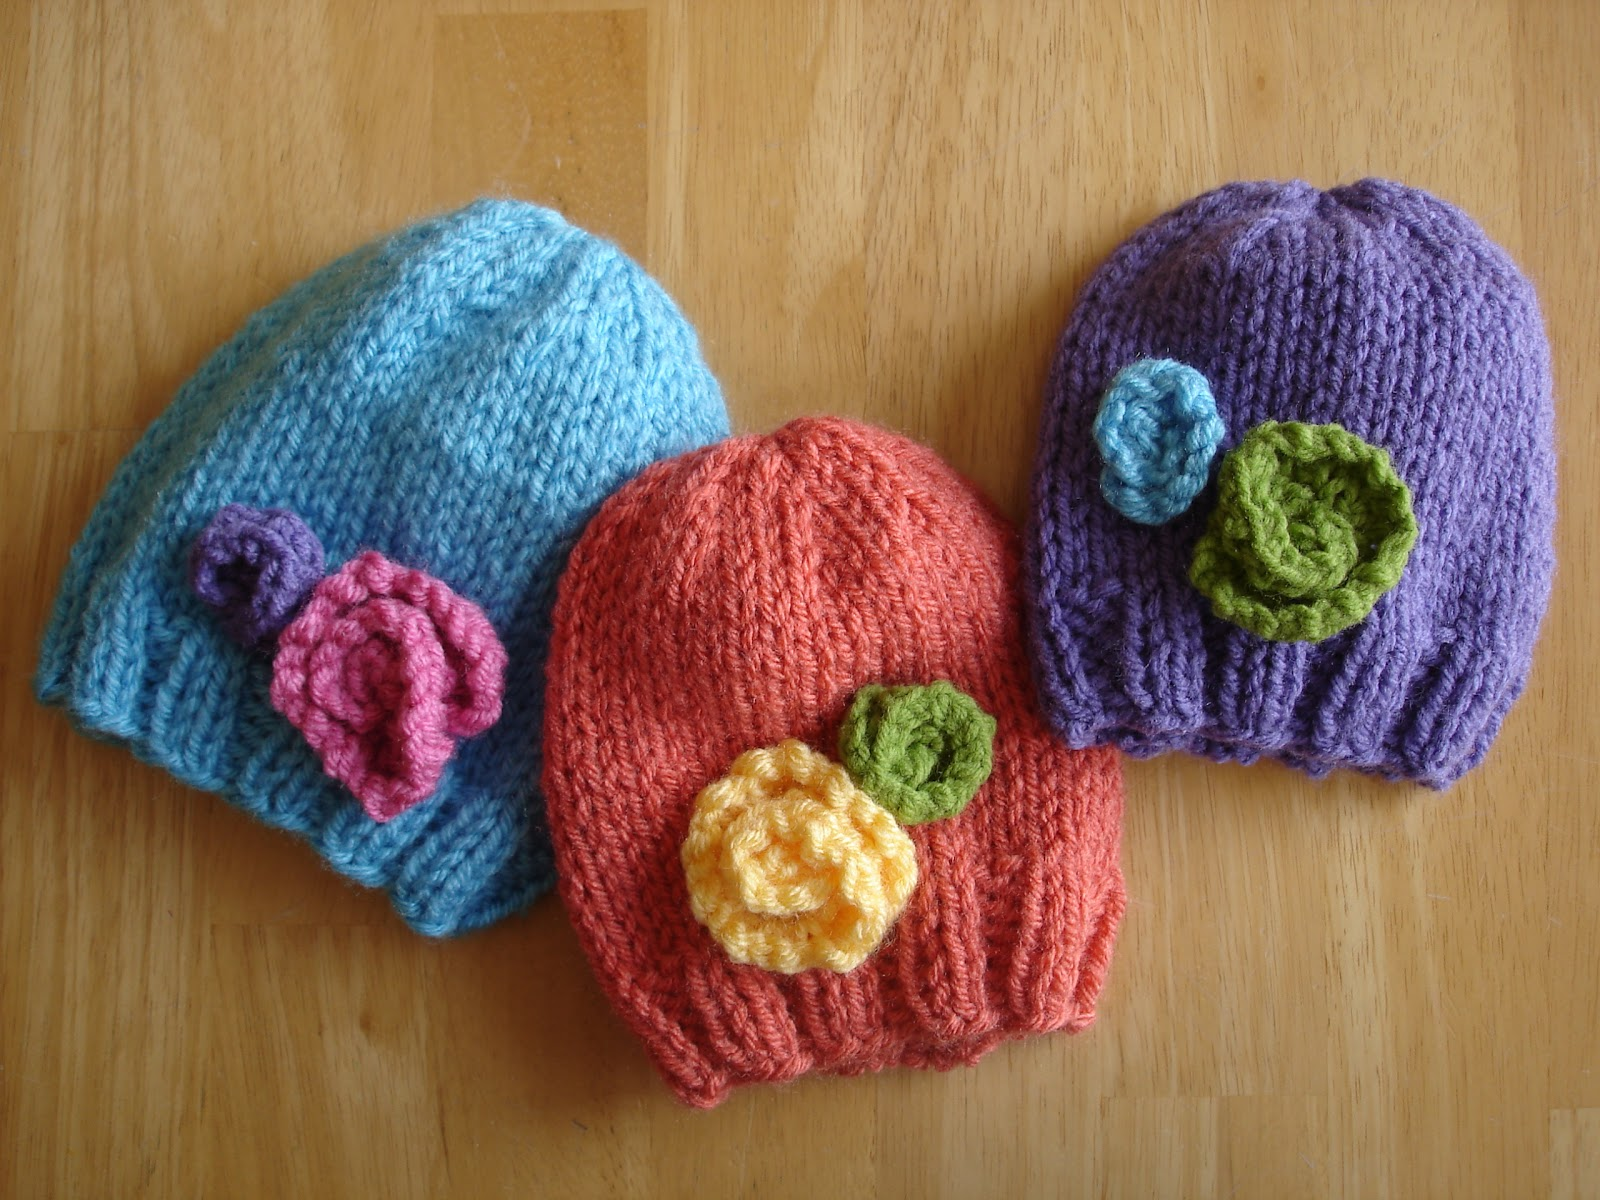 Baby Hats Free Knitting Patterns : Fiber Flux: Free Knitting Pattern! Baby In Bloom Hats